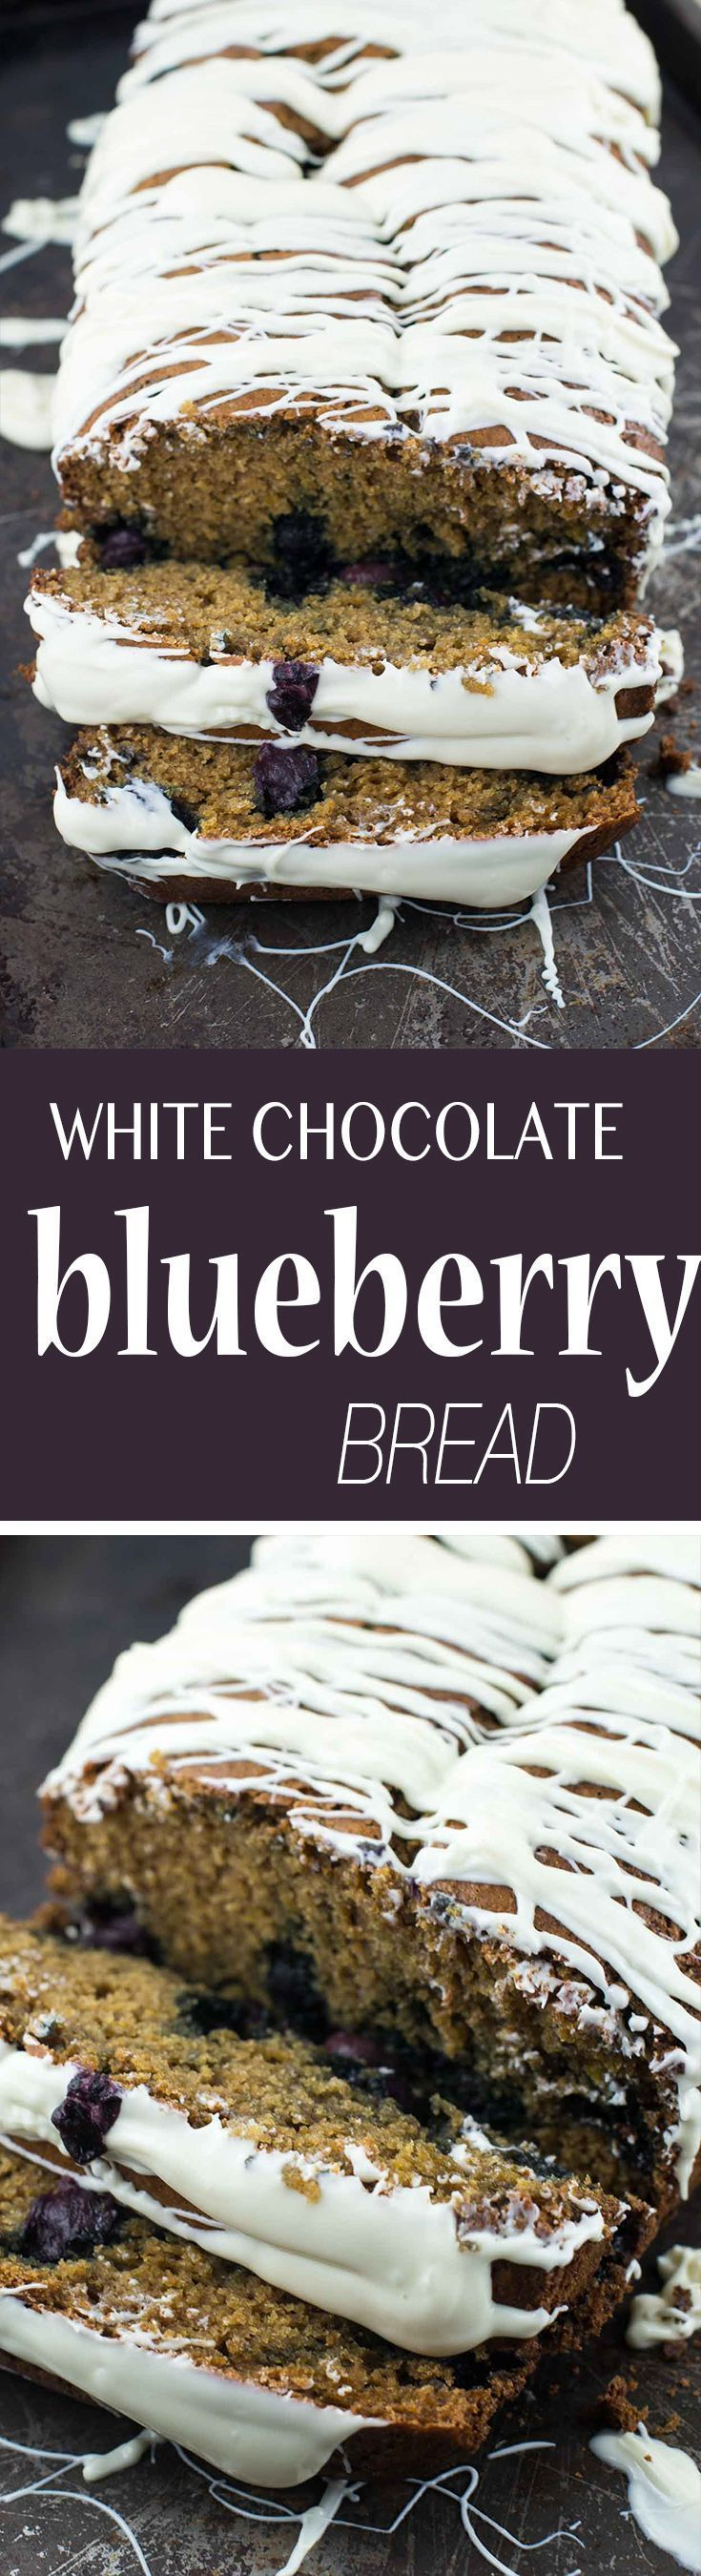 White chocolate blueberry bread recipe is full of healthier ingredients and is an easy and decadent breakfast recipe and can double as a dessert!